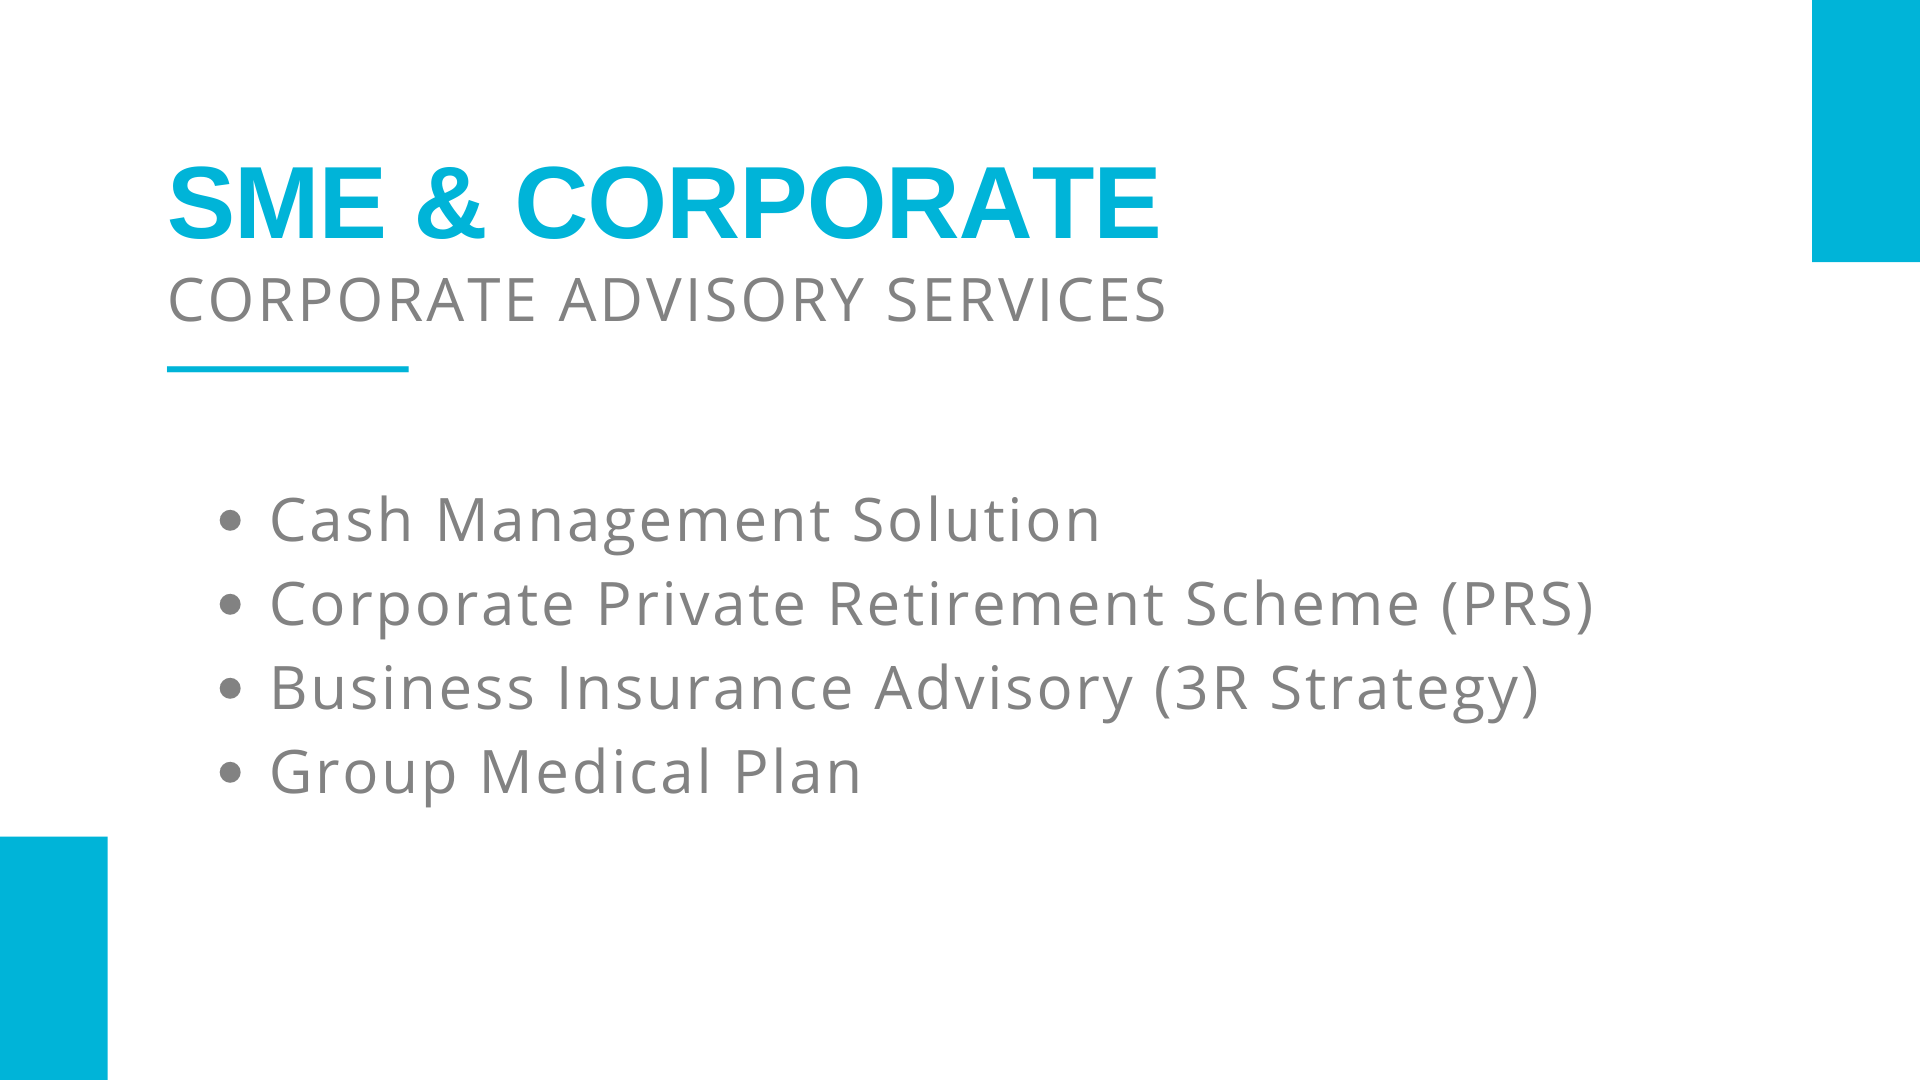 Corporate Advisory Services